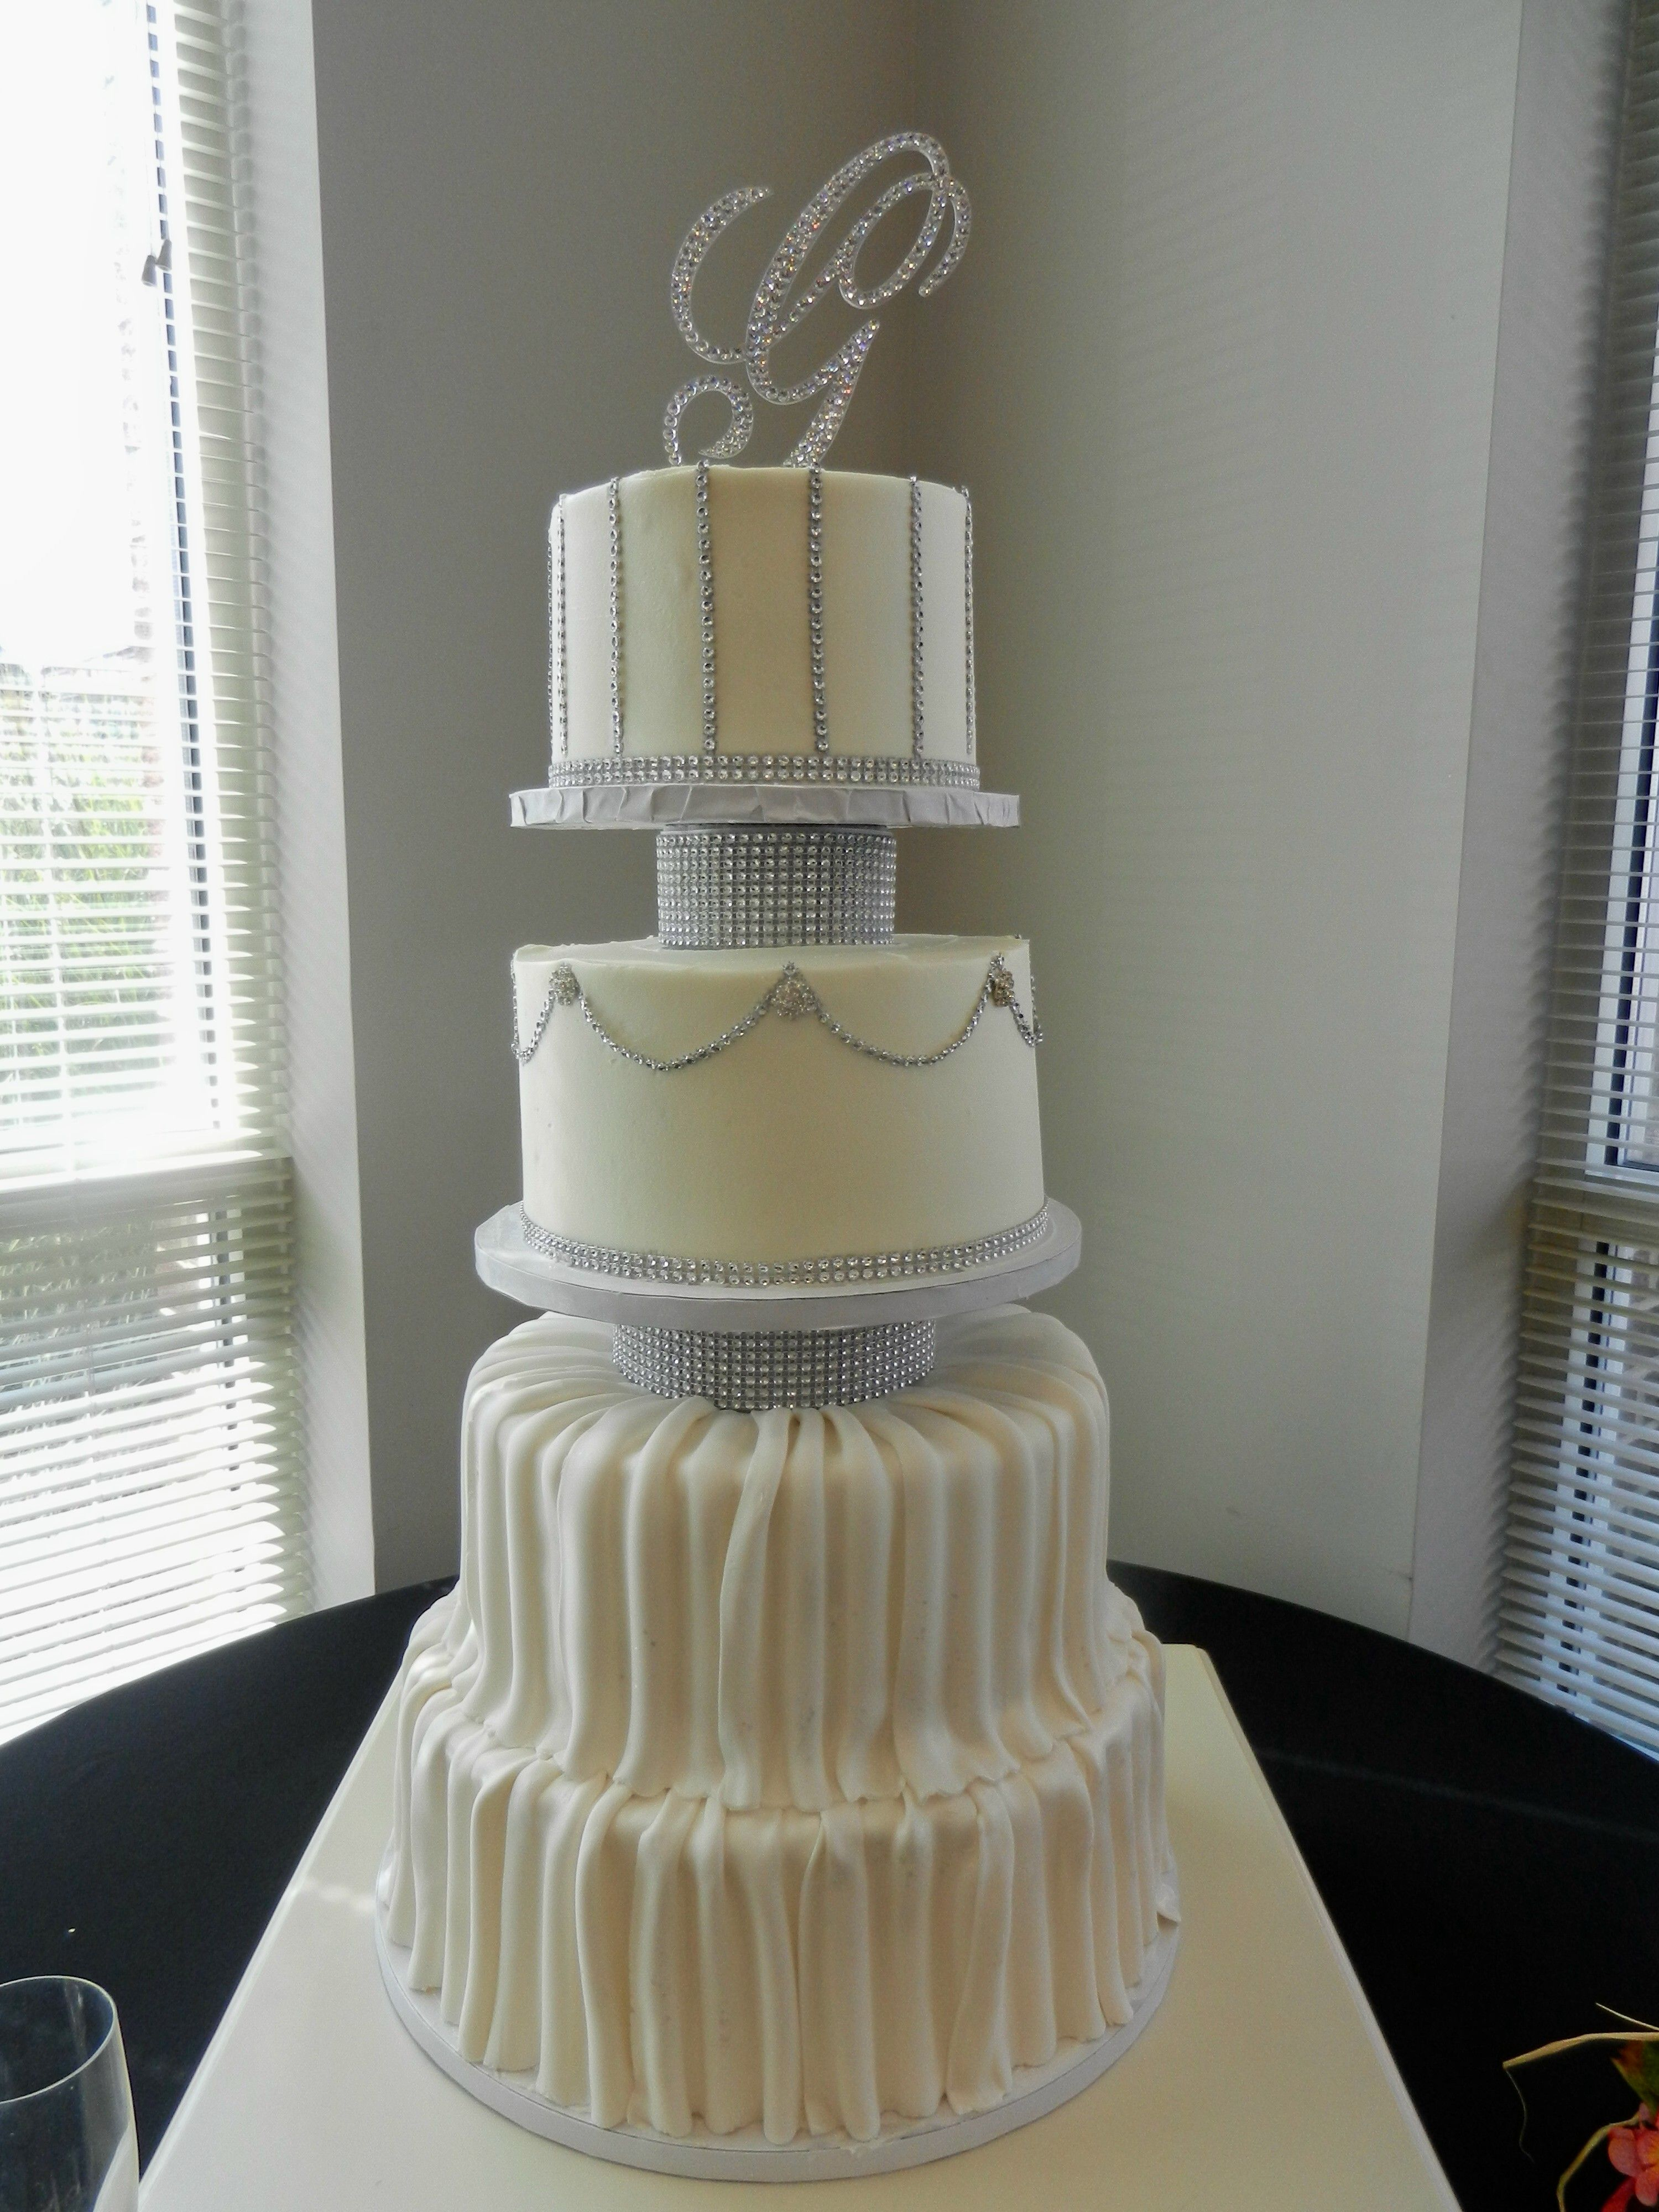 Exceptional Bling Wedding Cake Www.cheesecakeetc.biz Wedding Cakes Charlotte NC